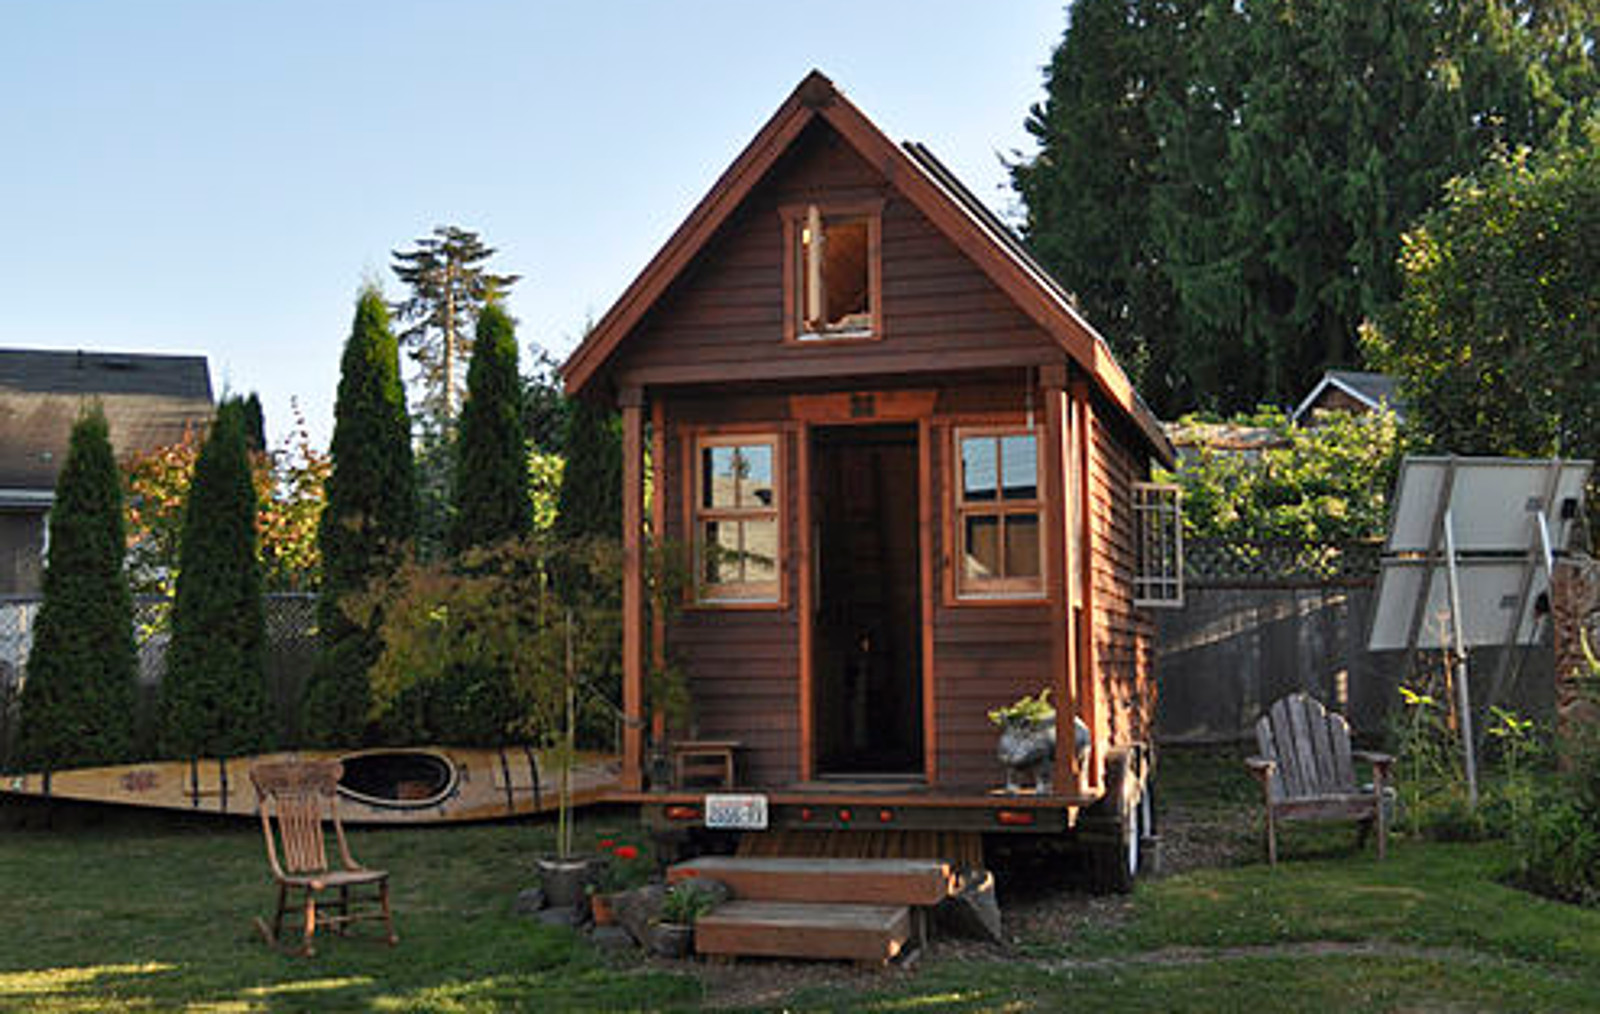 The Tiny House Movement: What is it and How You Can Join In